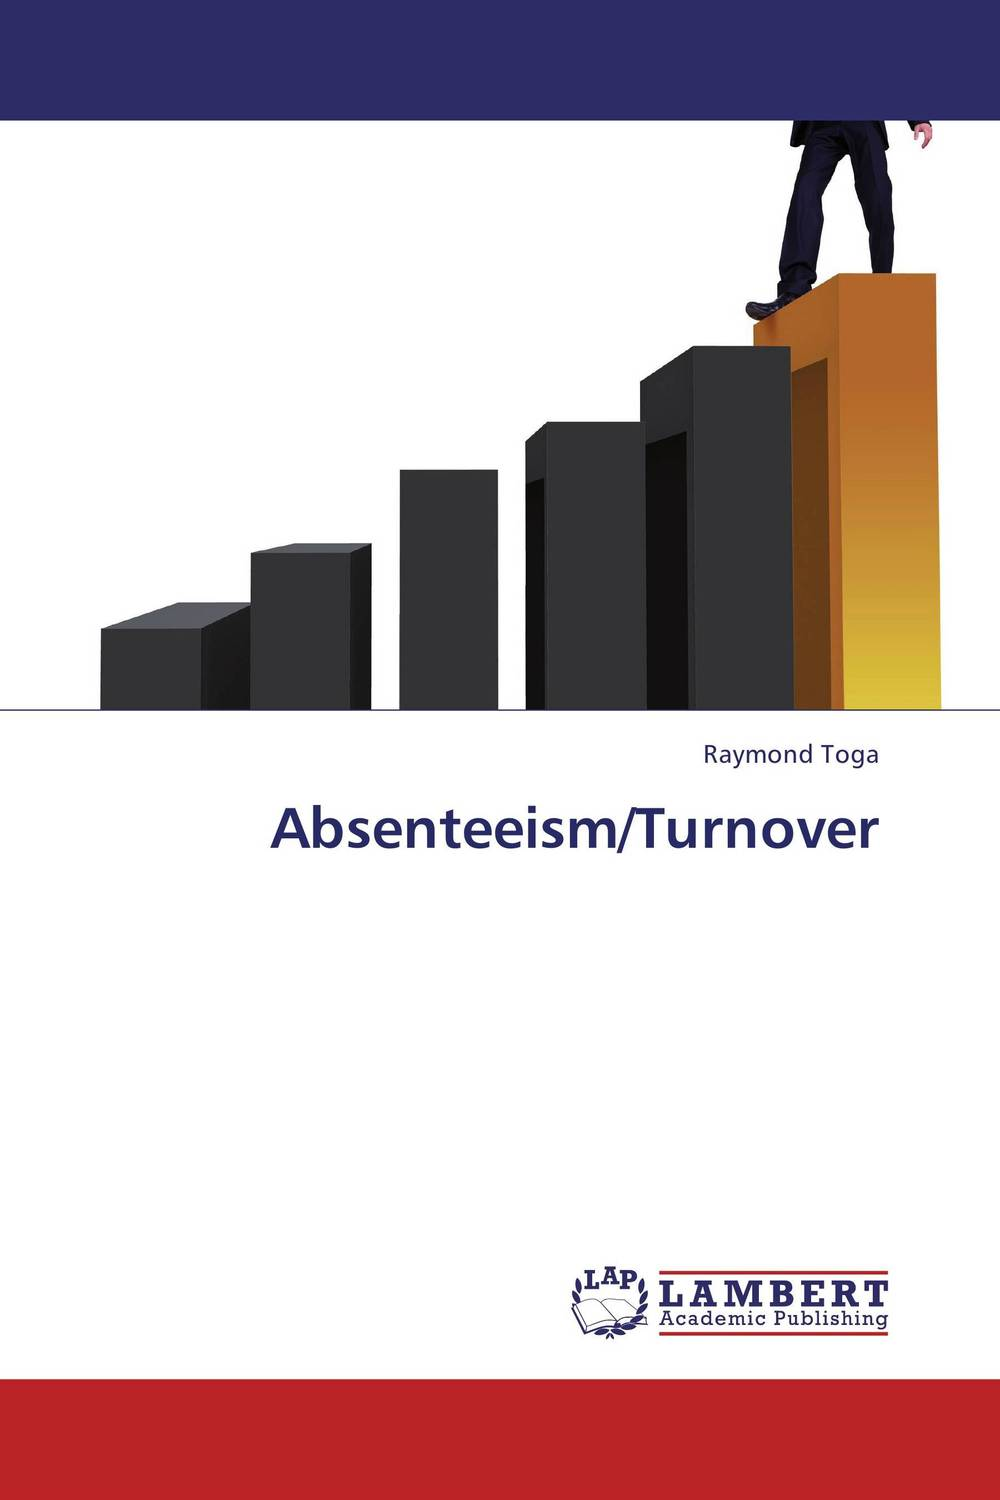 Absenteeism/Turnover impact of job satisfaction on turnover intentions